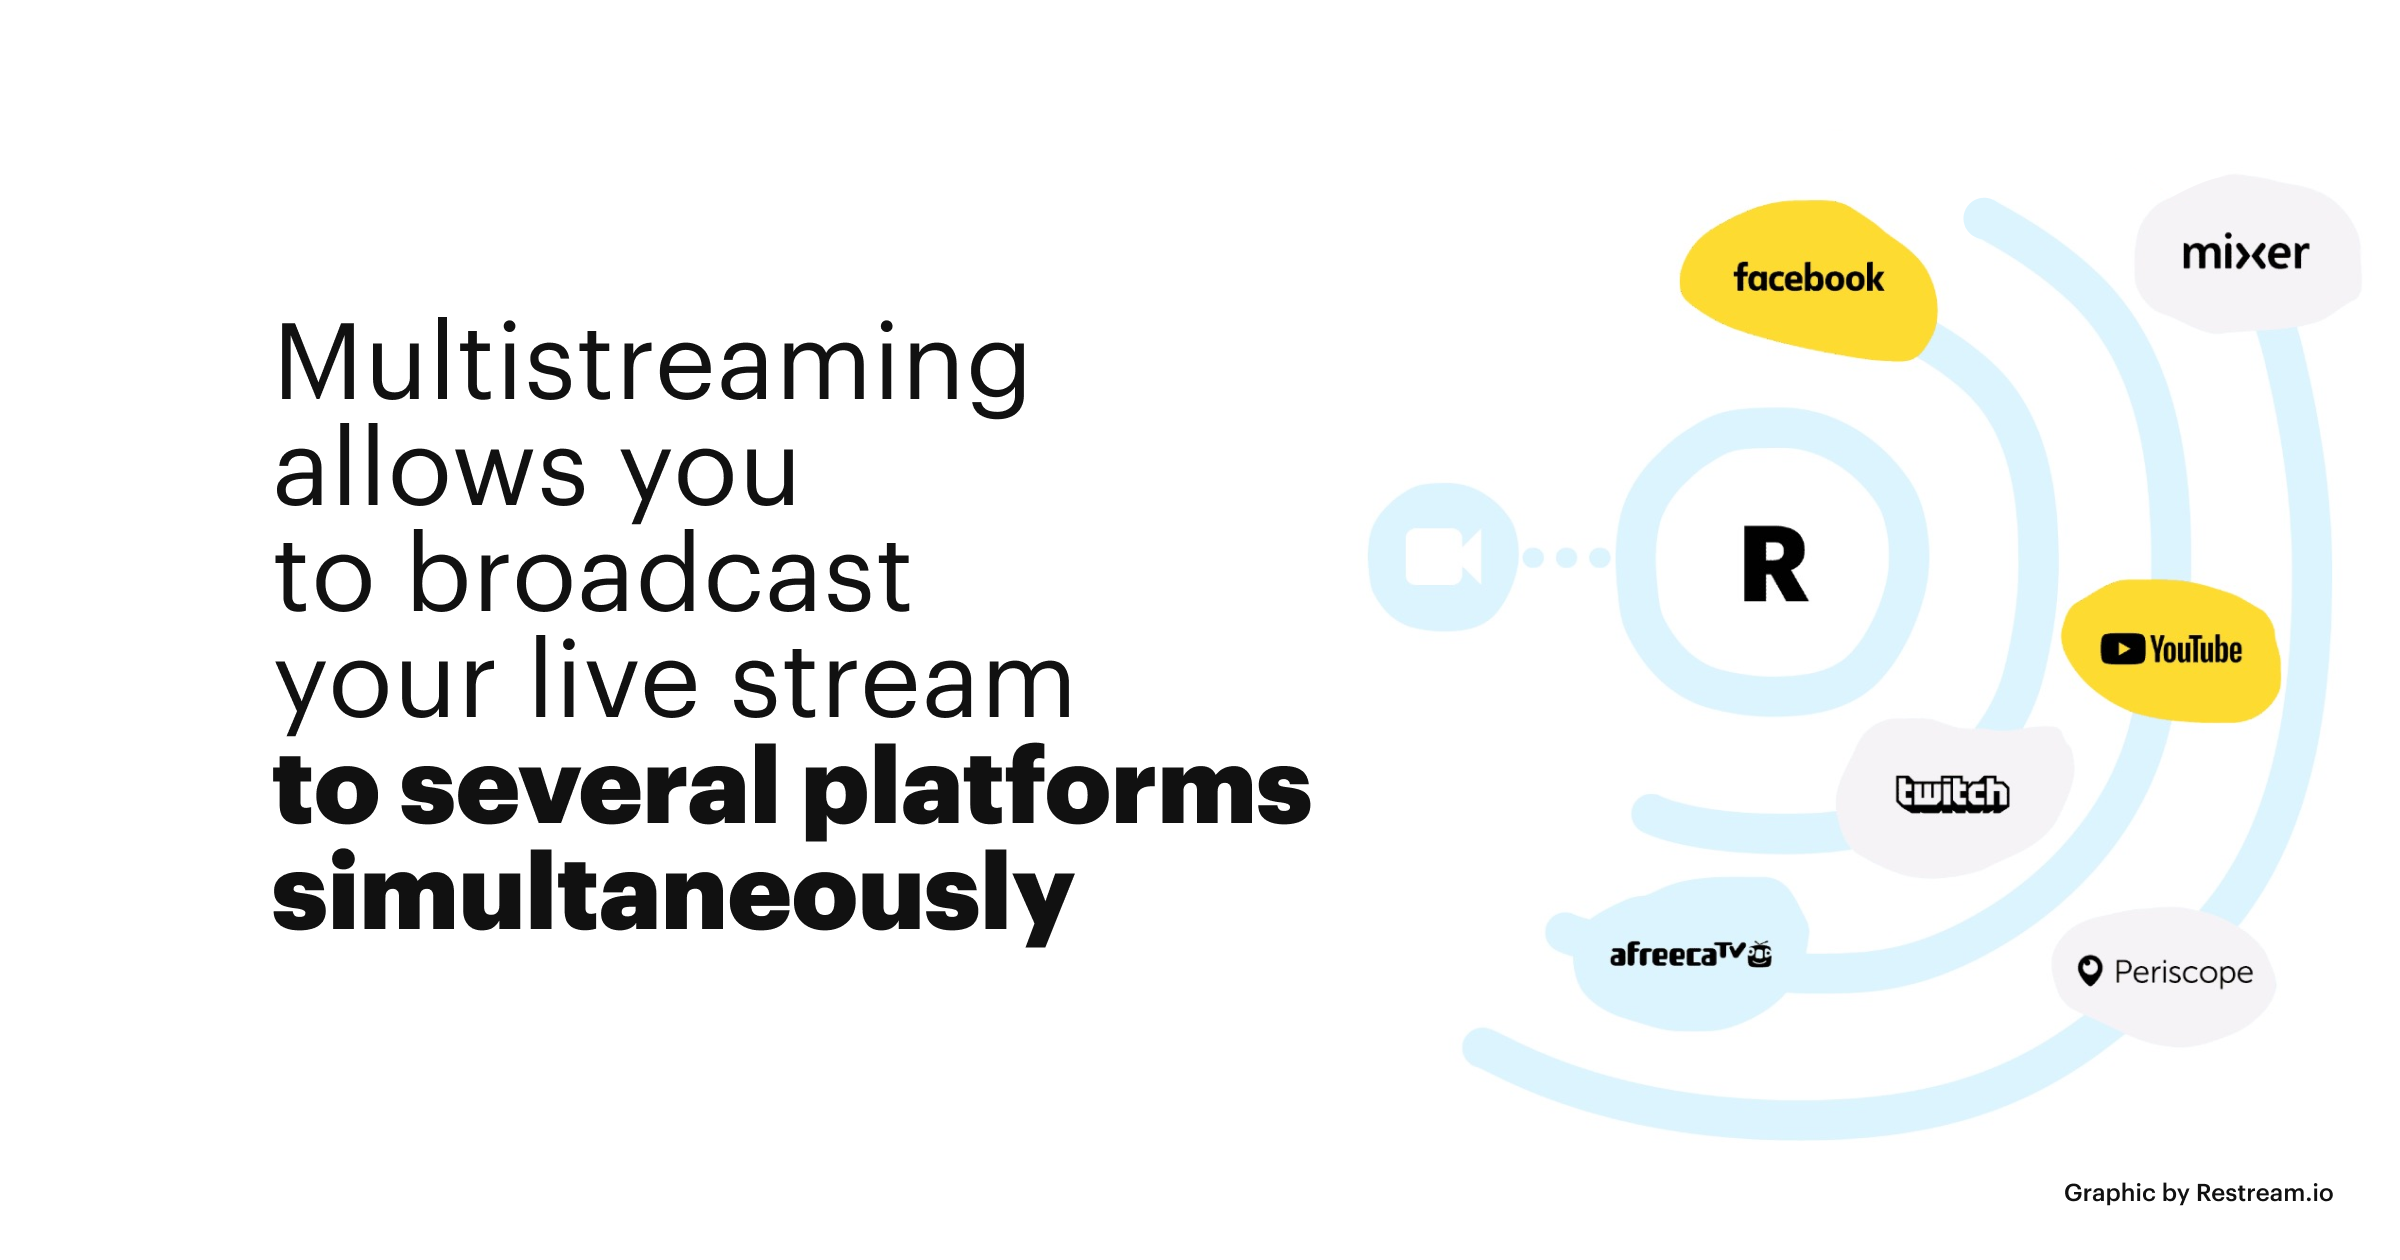 Multistreaming allows you to broadcast your live stream to several platforms simultaneously